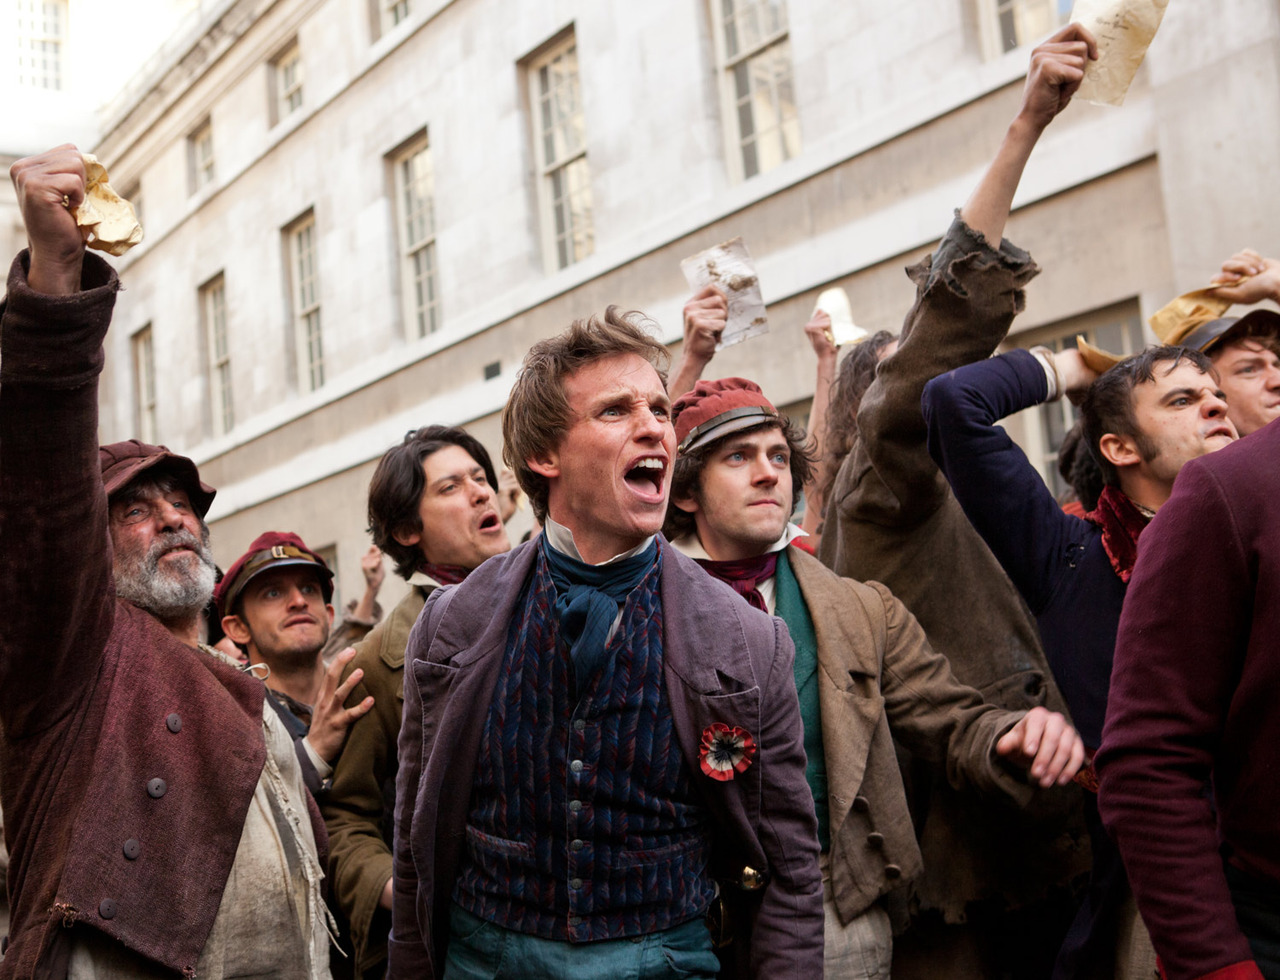 A still from the 2012 film, Les Miserables.